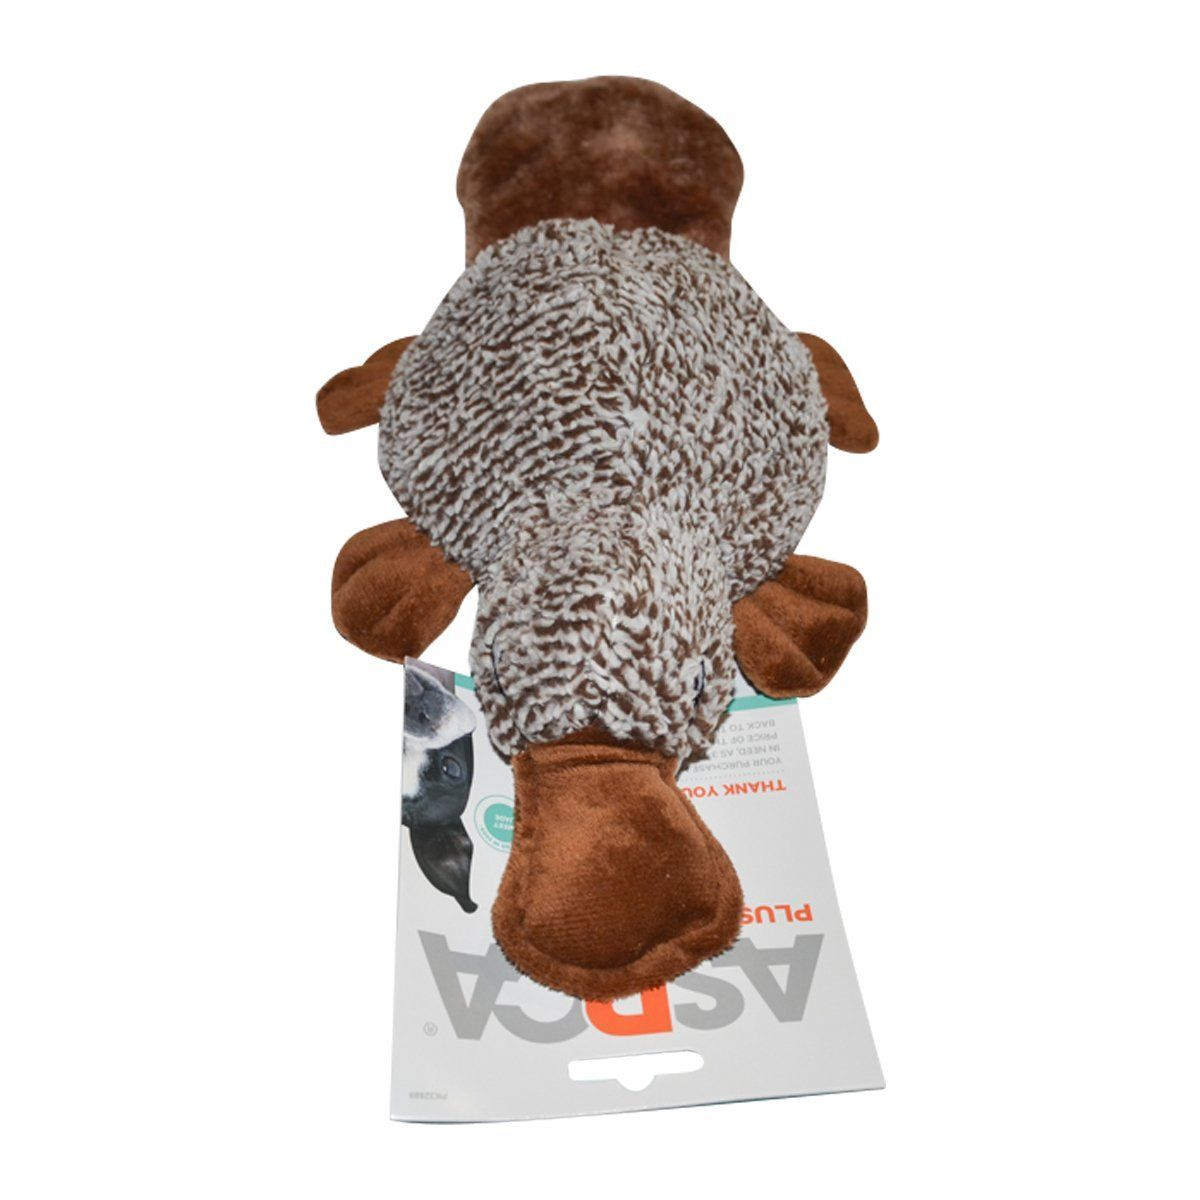 Aspca Dog Squeaky Chew Toy Platypus Find Out More About The